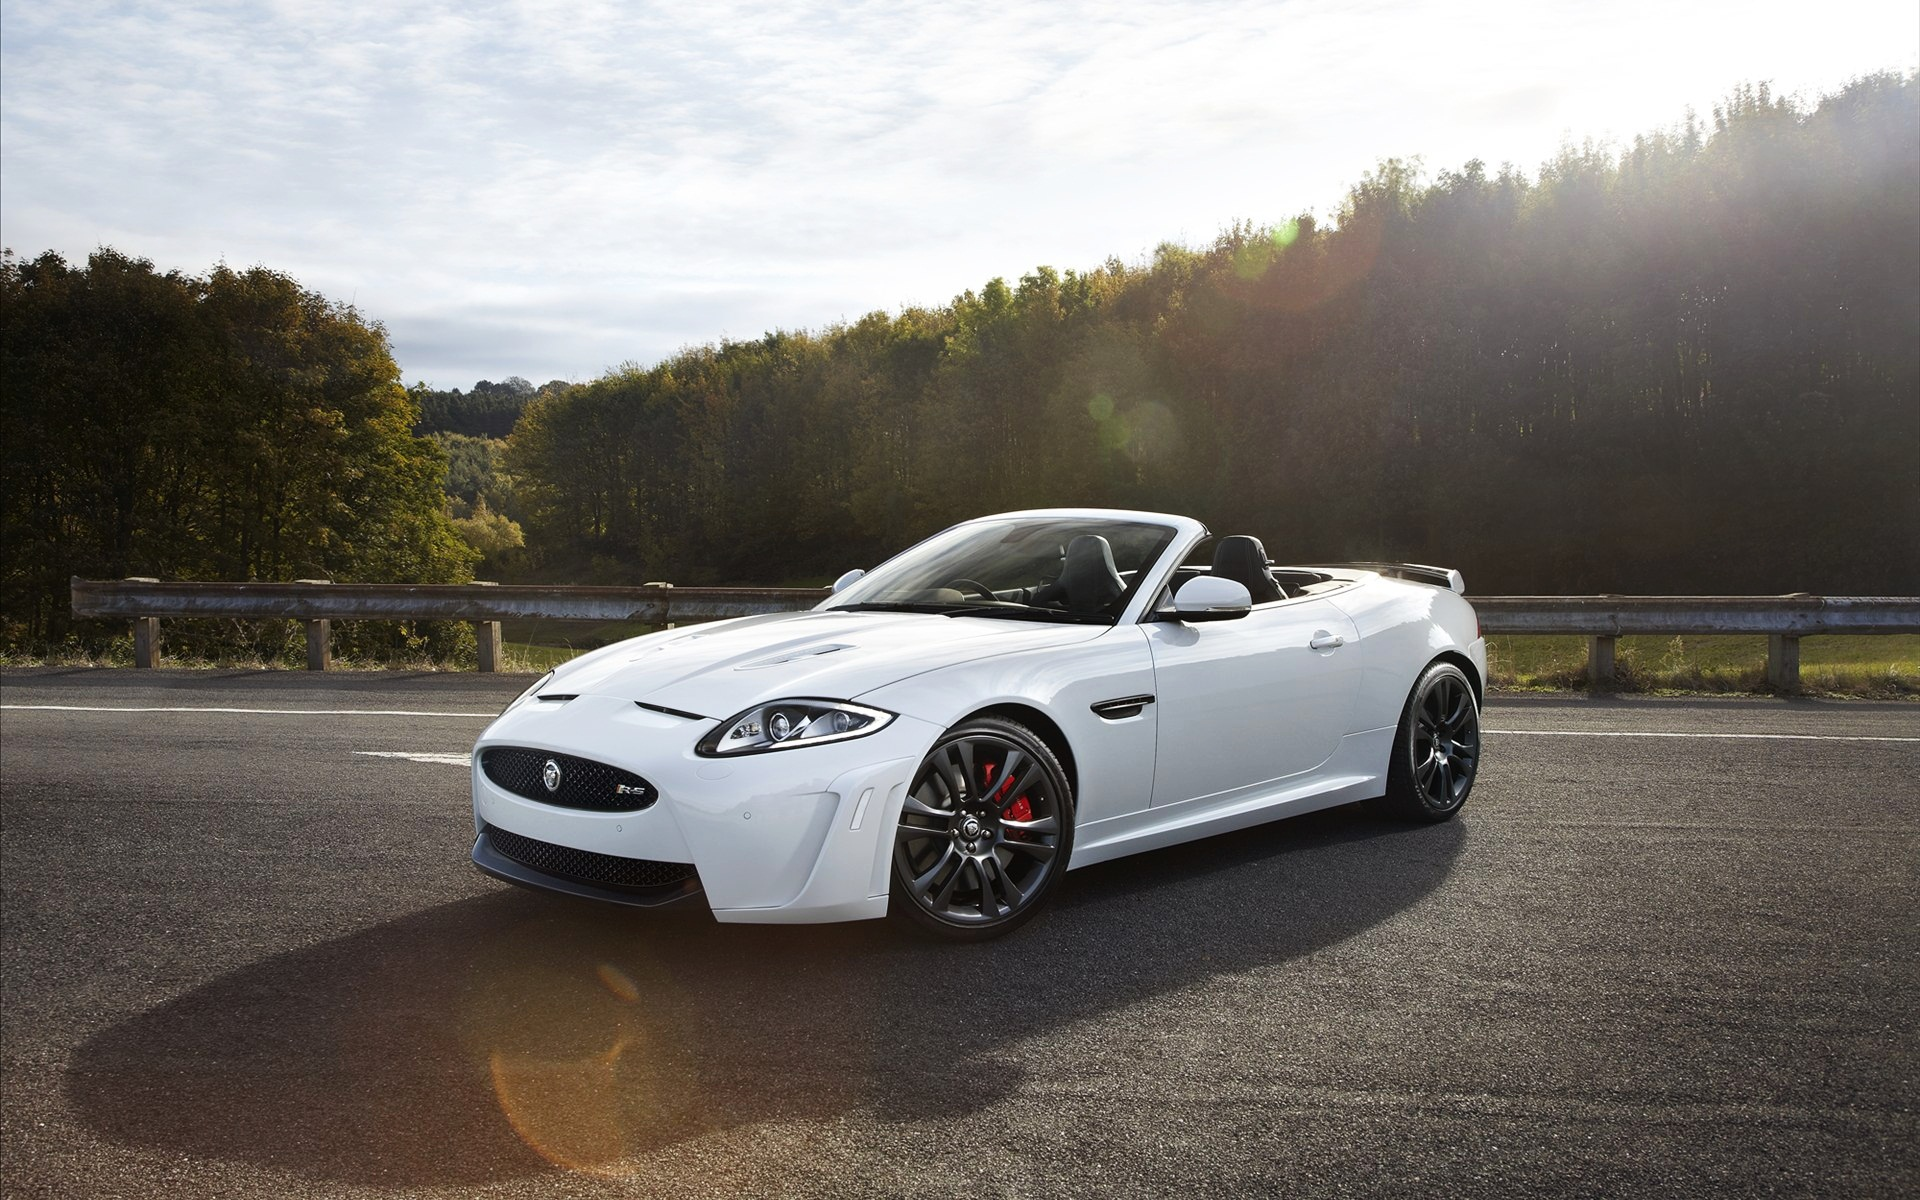 White Jaguar Car Wallpaper High Quality Is Cool Wallpapers